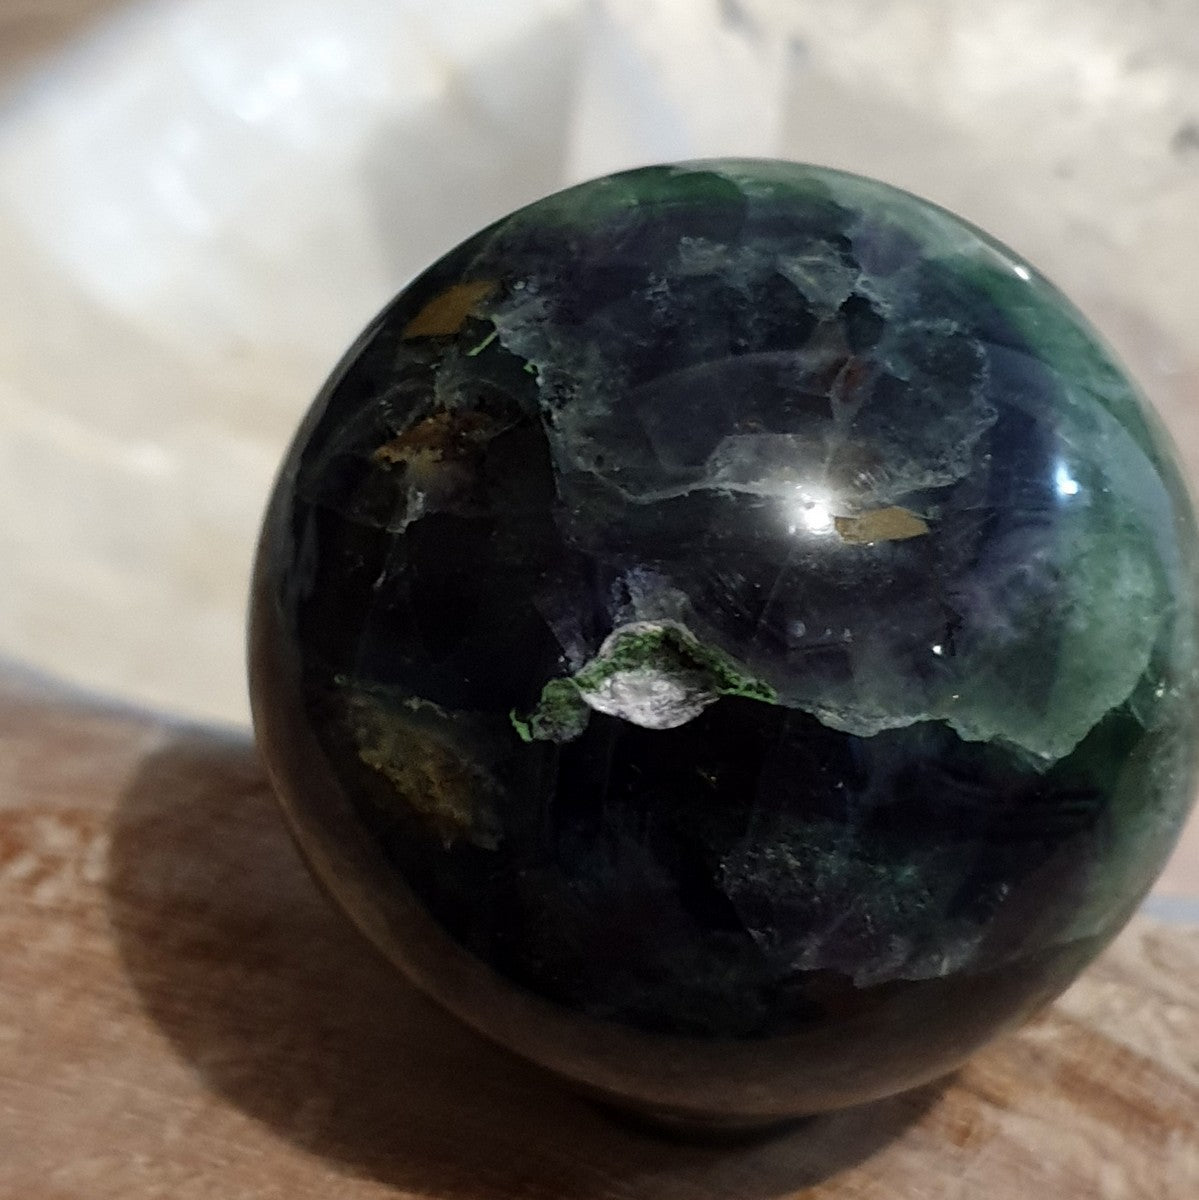 Rainbow Fluorite Sphere - Buy Now at Illiom Crystals - Afterpay Available